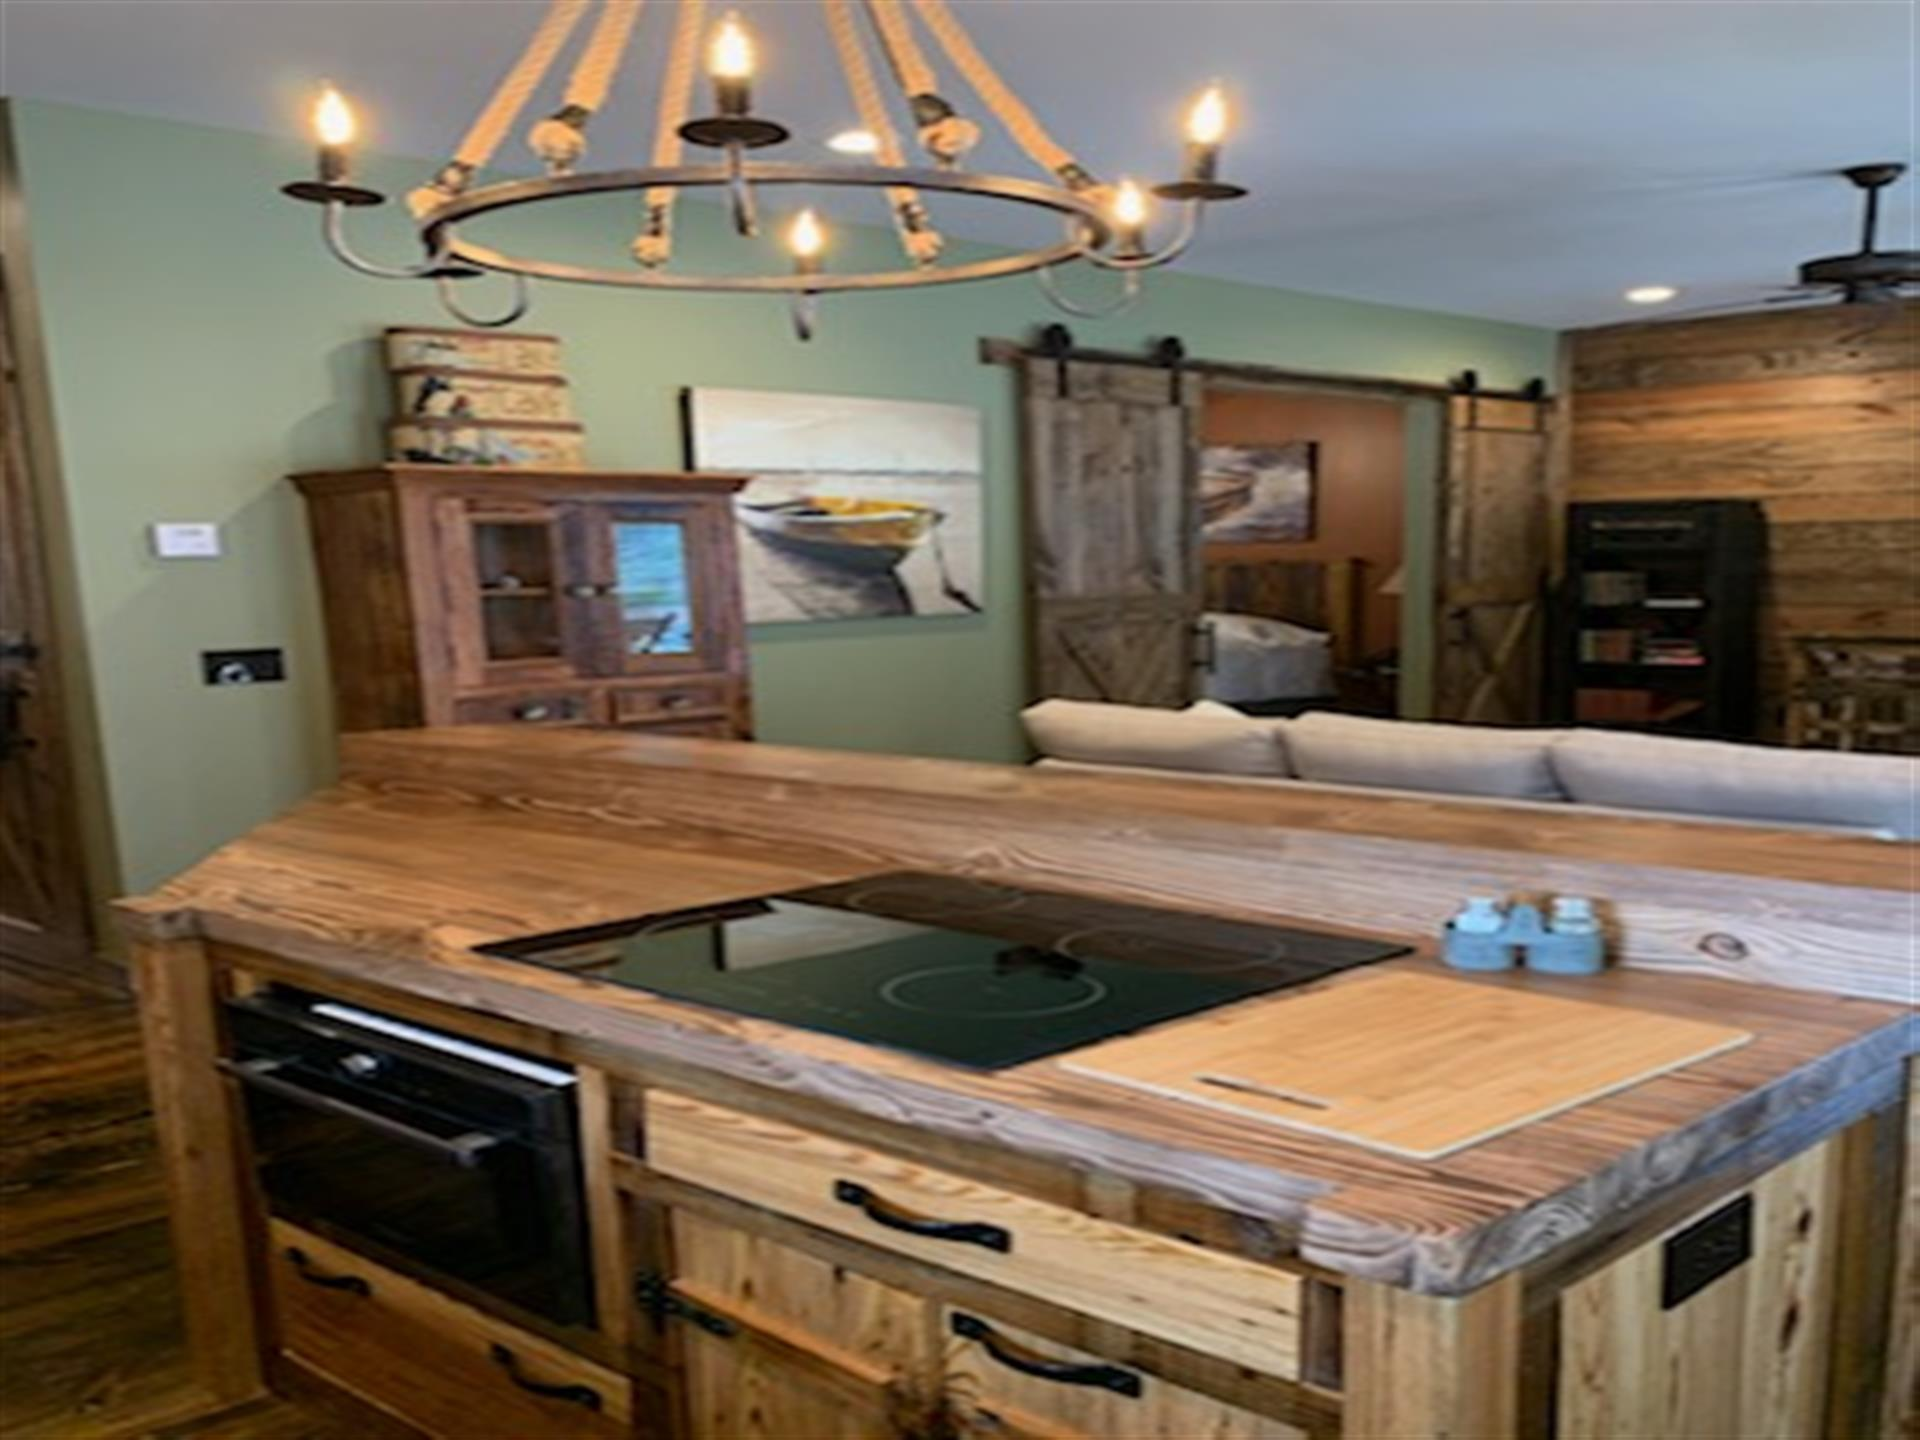 kitchen countertop with electric stove and light fixture above. living room with couch in background